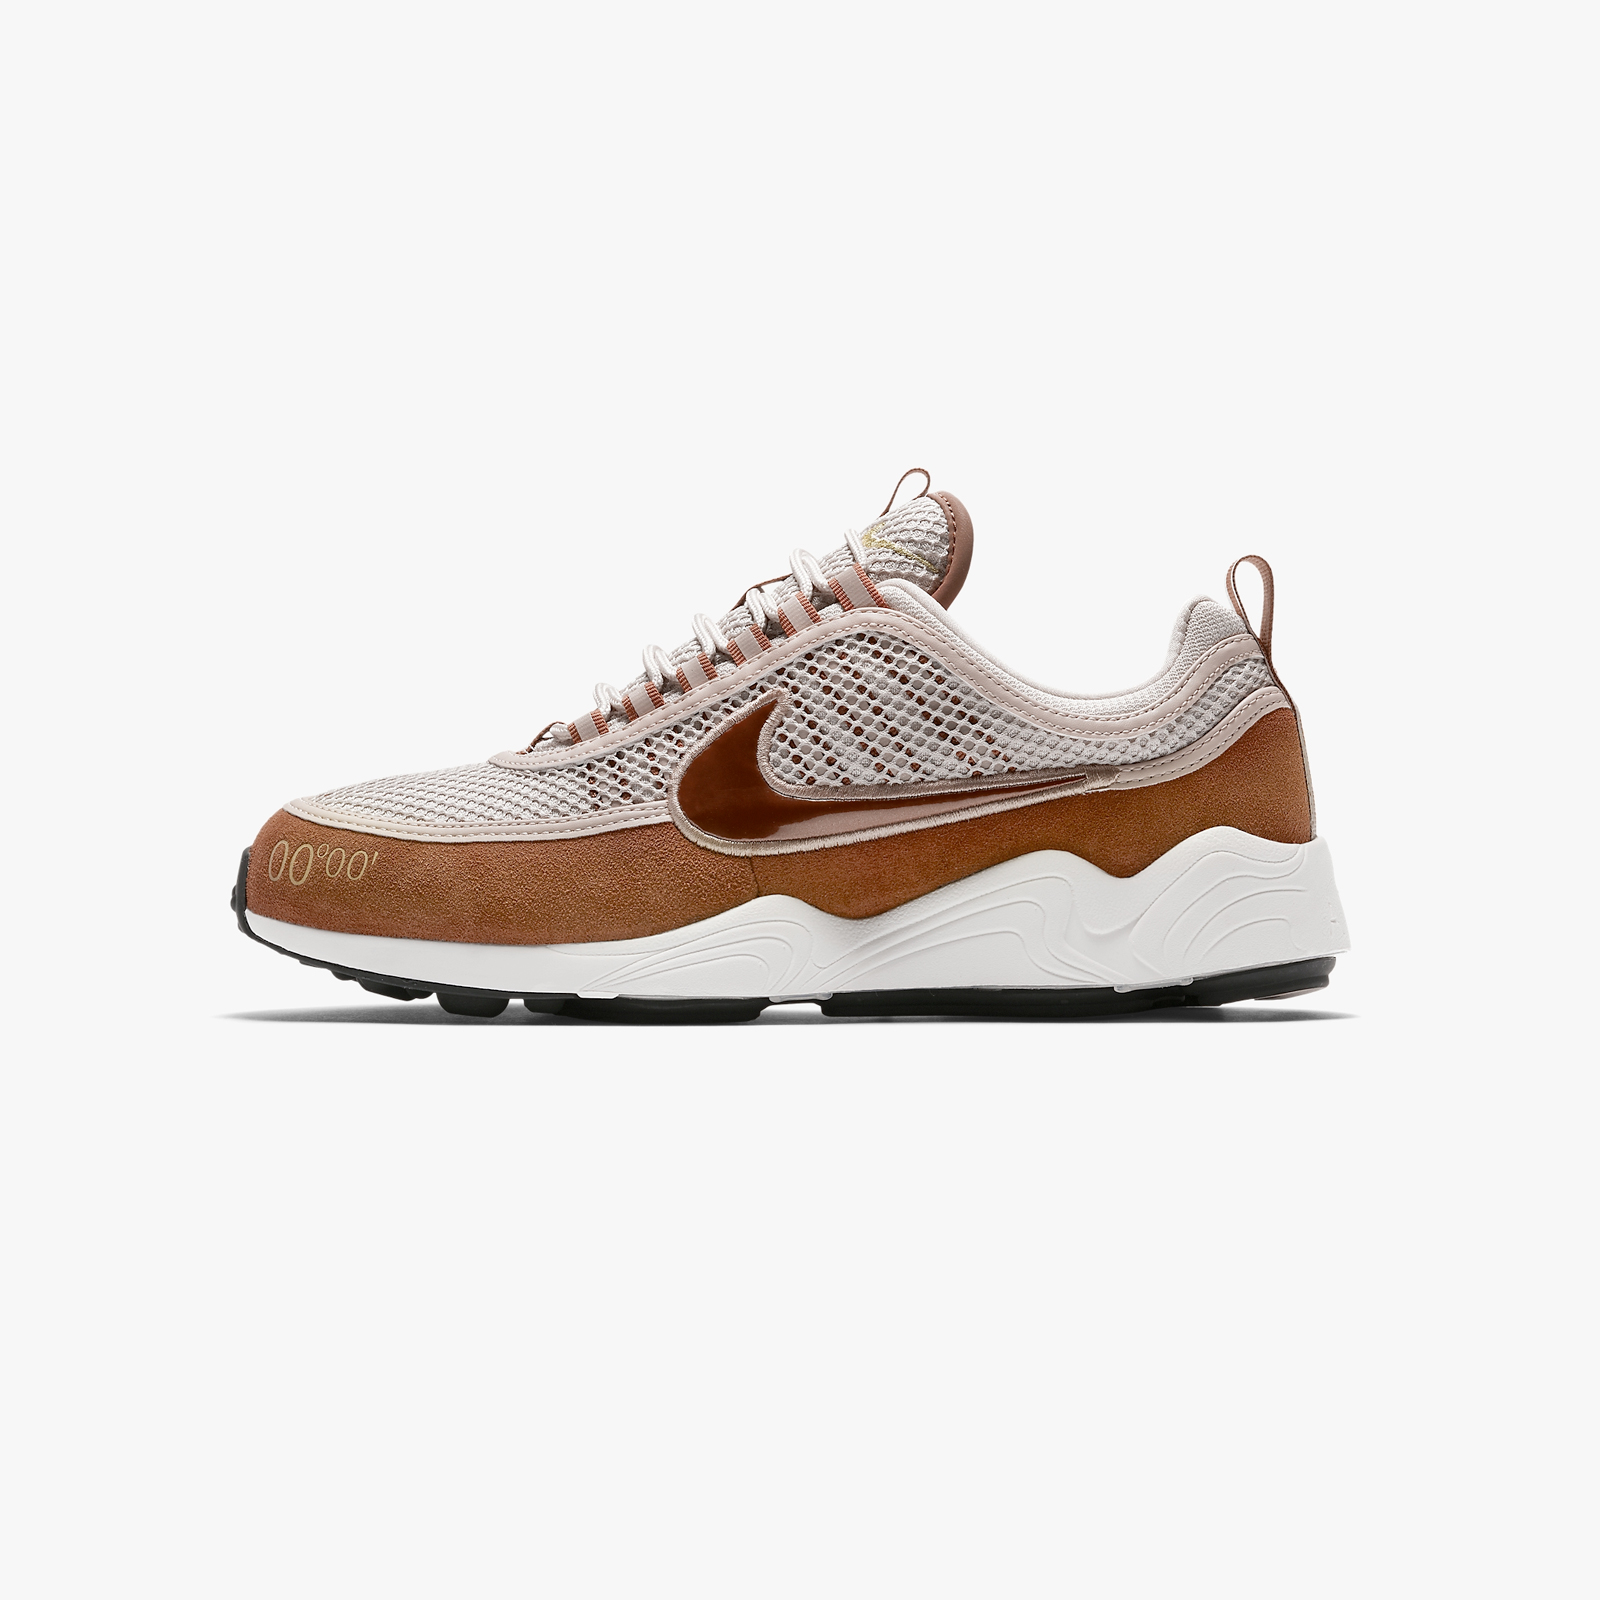 3a9c036054d4 Nike Air Zoom Spiridon UK - Aj6300-200 - Sneakersnstuff